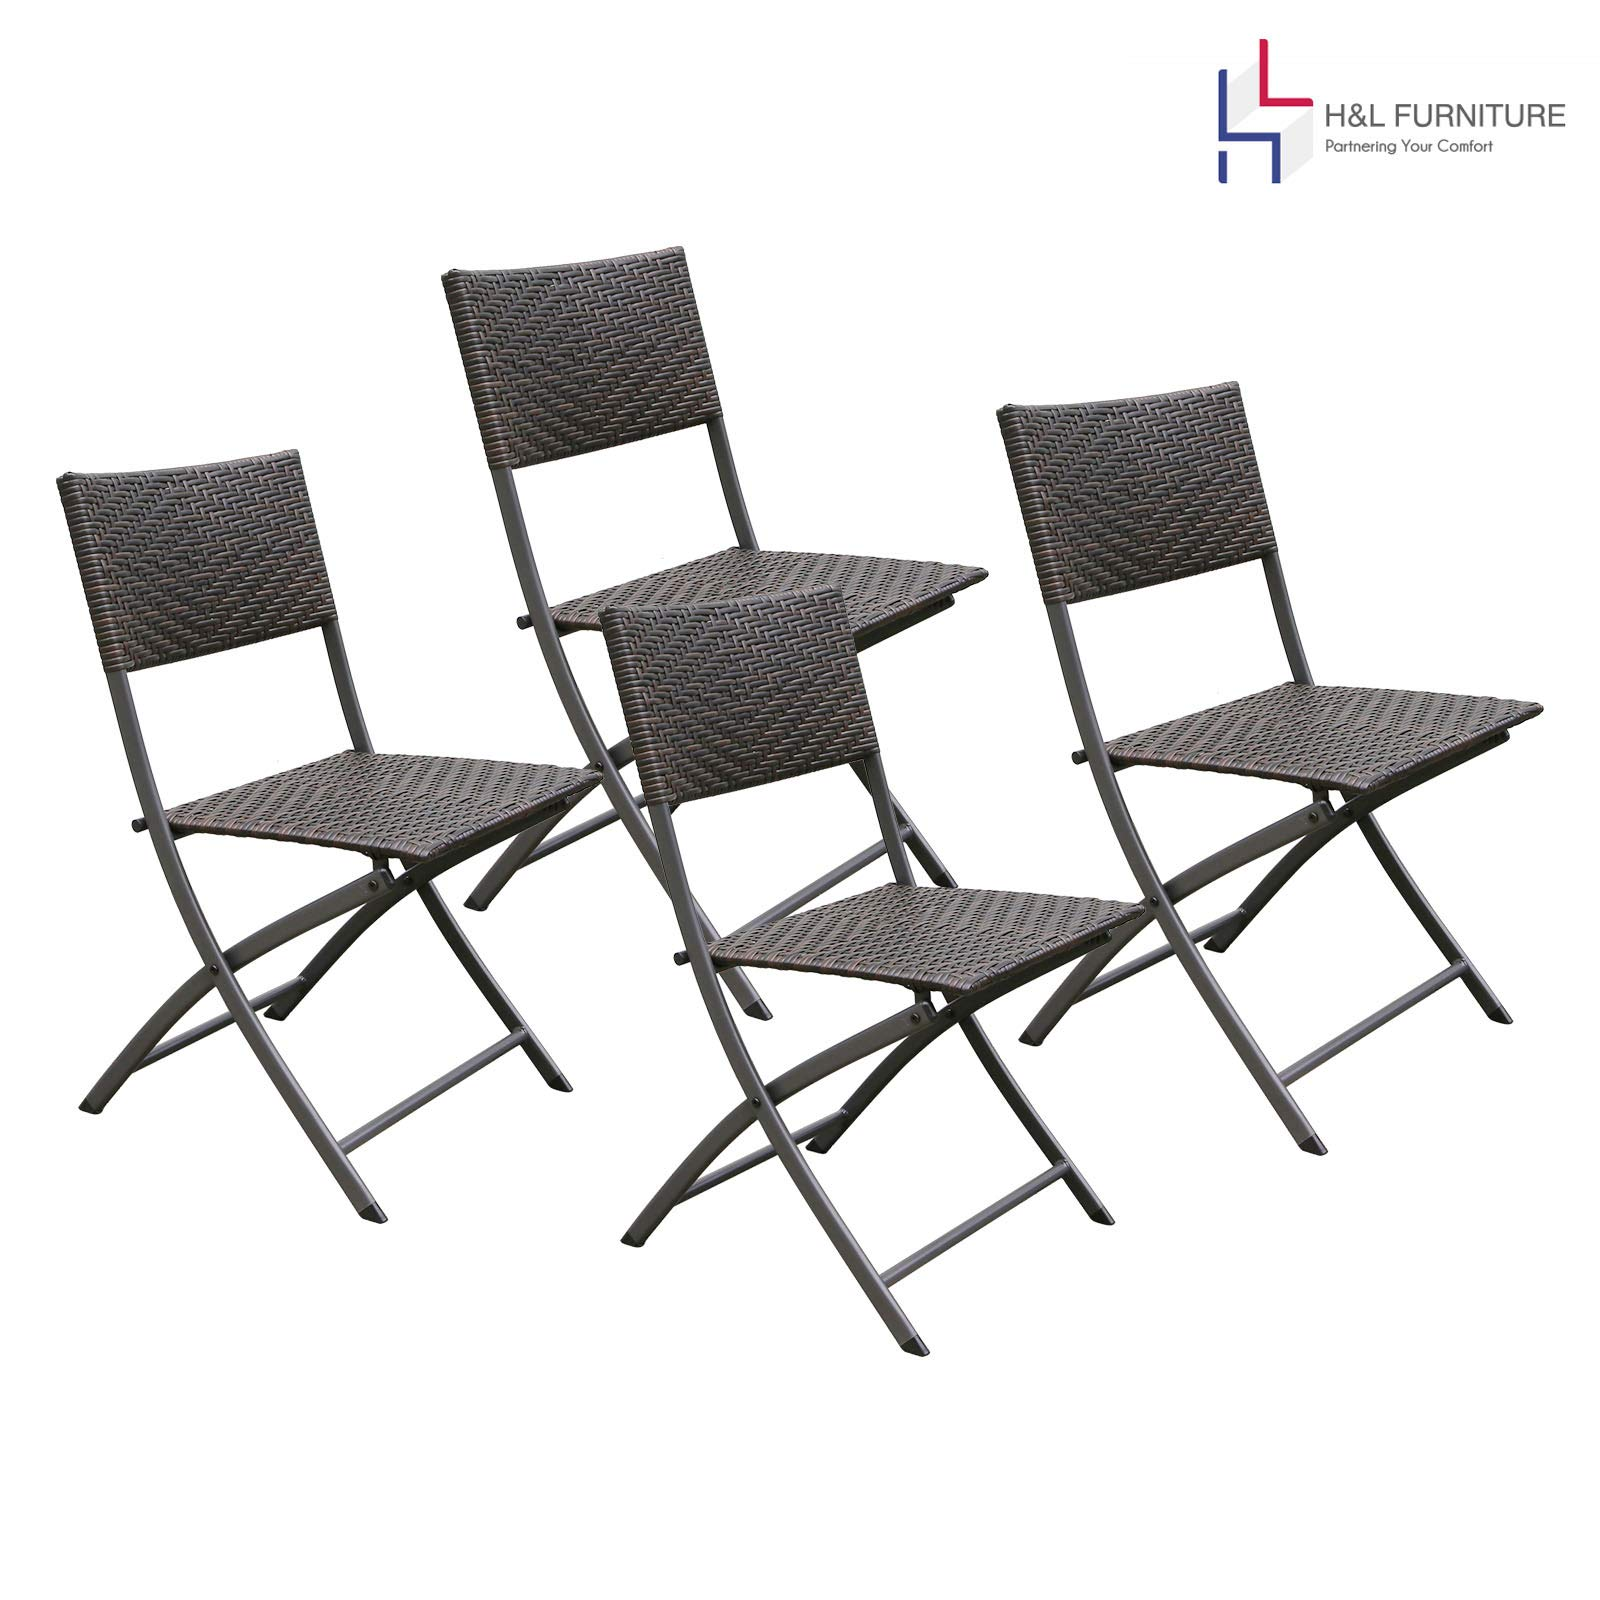 HL Patio 4-Pack Folding Chairs, Portable for Outdoor Camping, Beach, Deck Dining, Espresso Brown, Resin Rattan Steel Folding Chairs, 1 Year Warranty, No Assembly Needed by HL